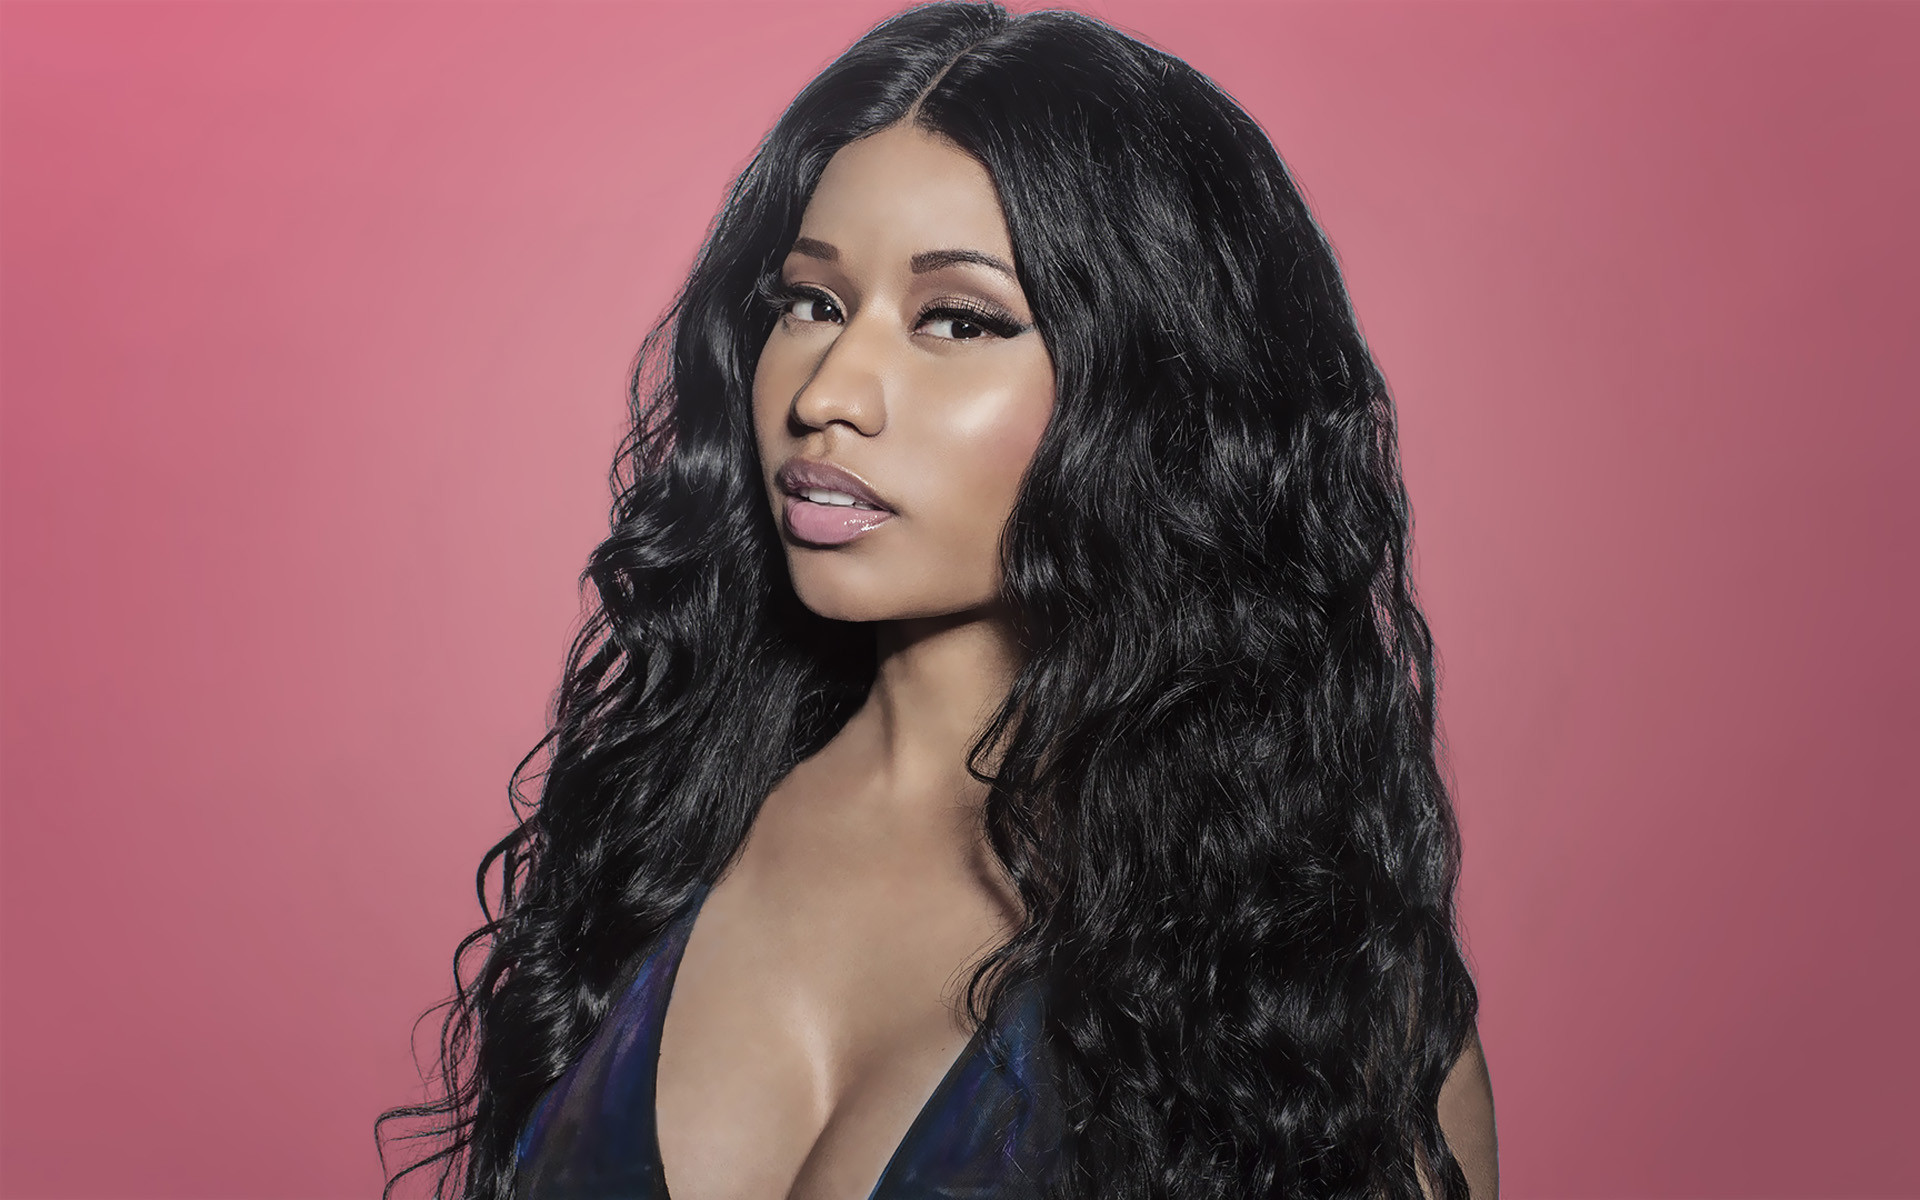 Nicki Minaj Hd Wallpaper 67 Images